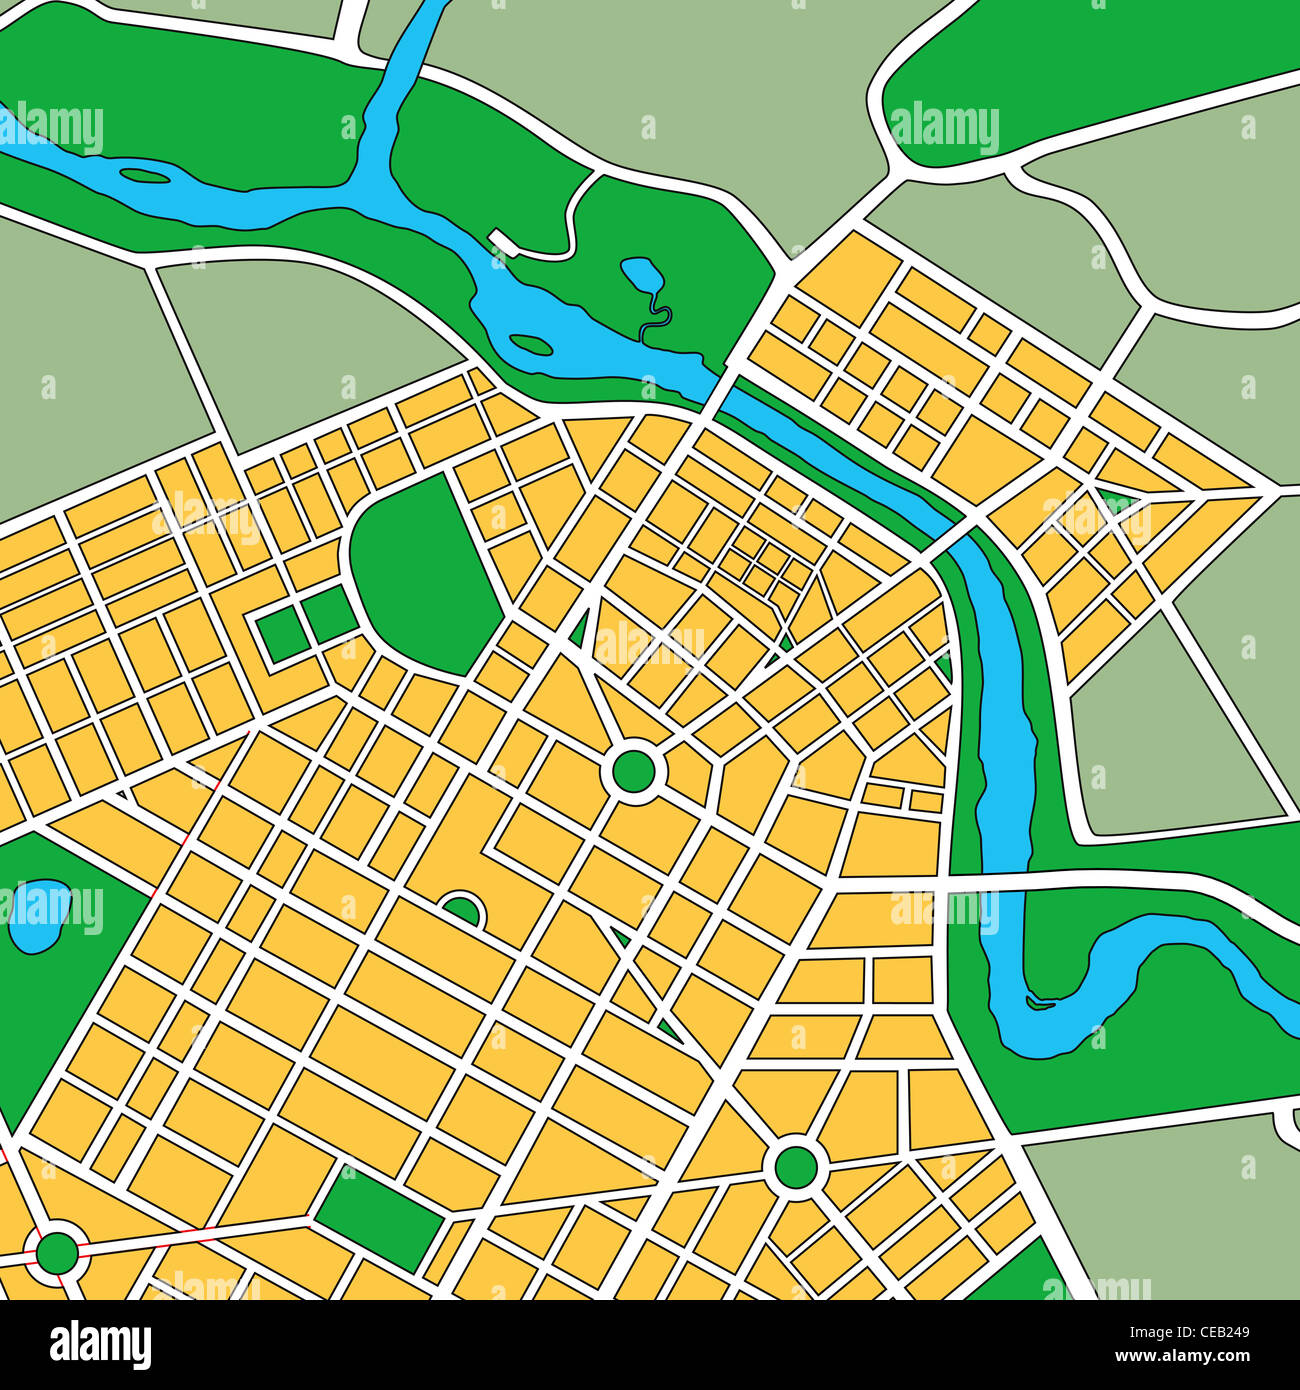 Map or plan of generic urban city showing streets and parks - Stock Image